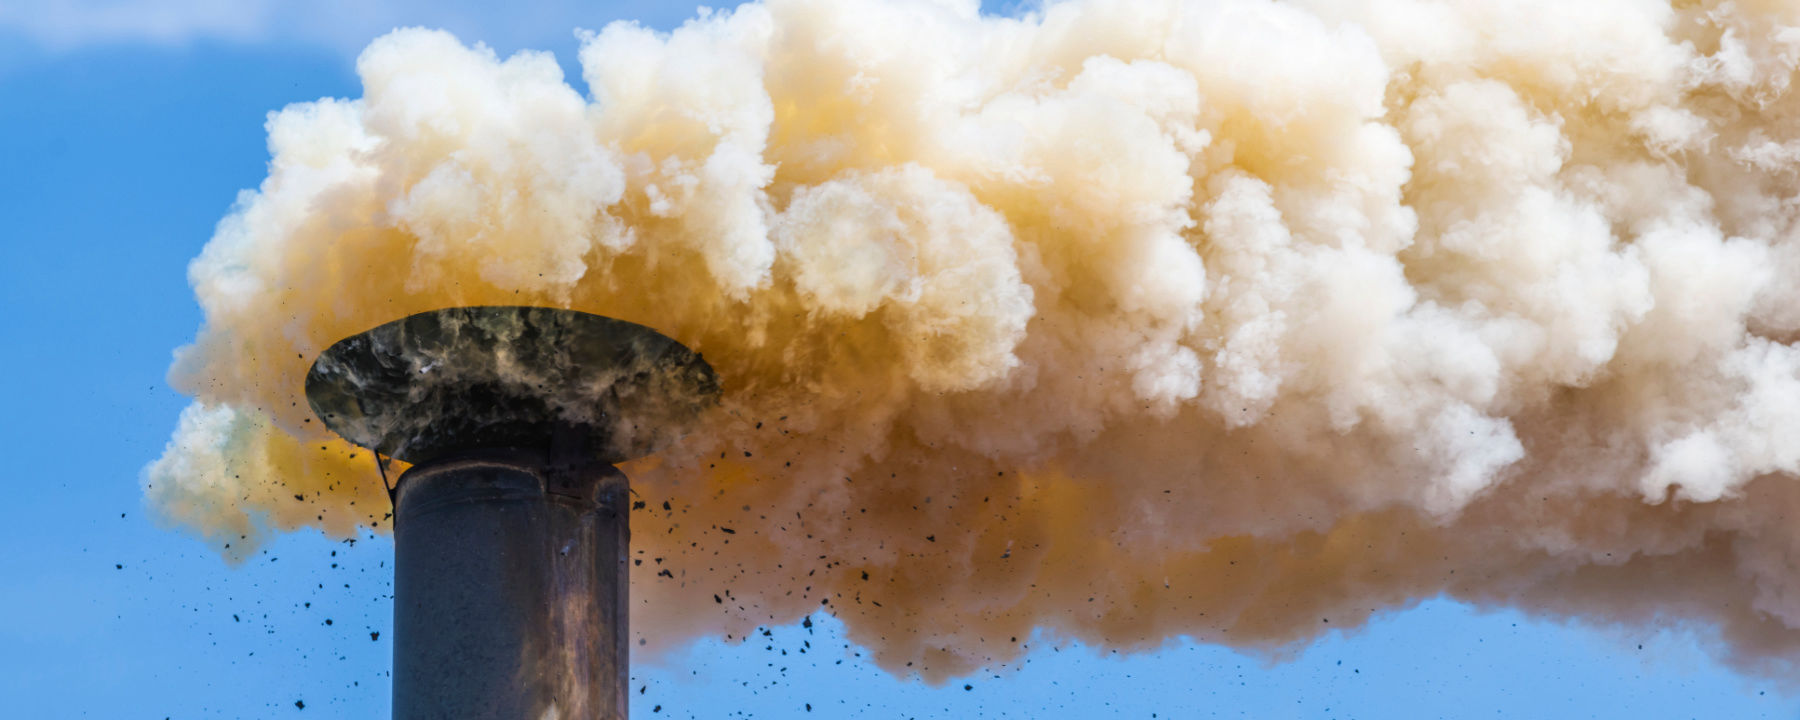 Q&A: Pollution Linked to 15 Percent Increase in COVID-19 Deaths